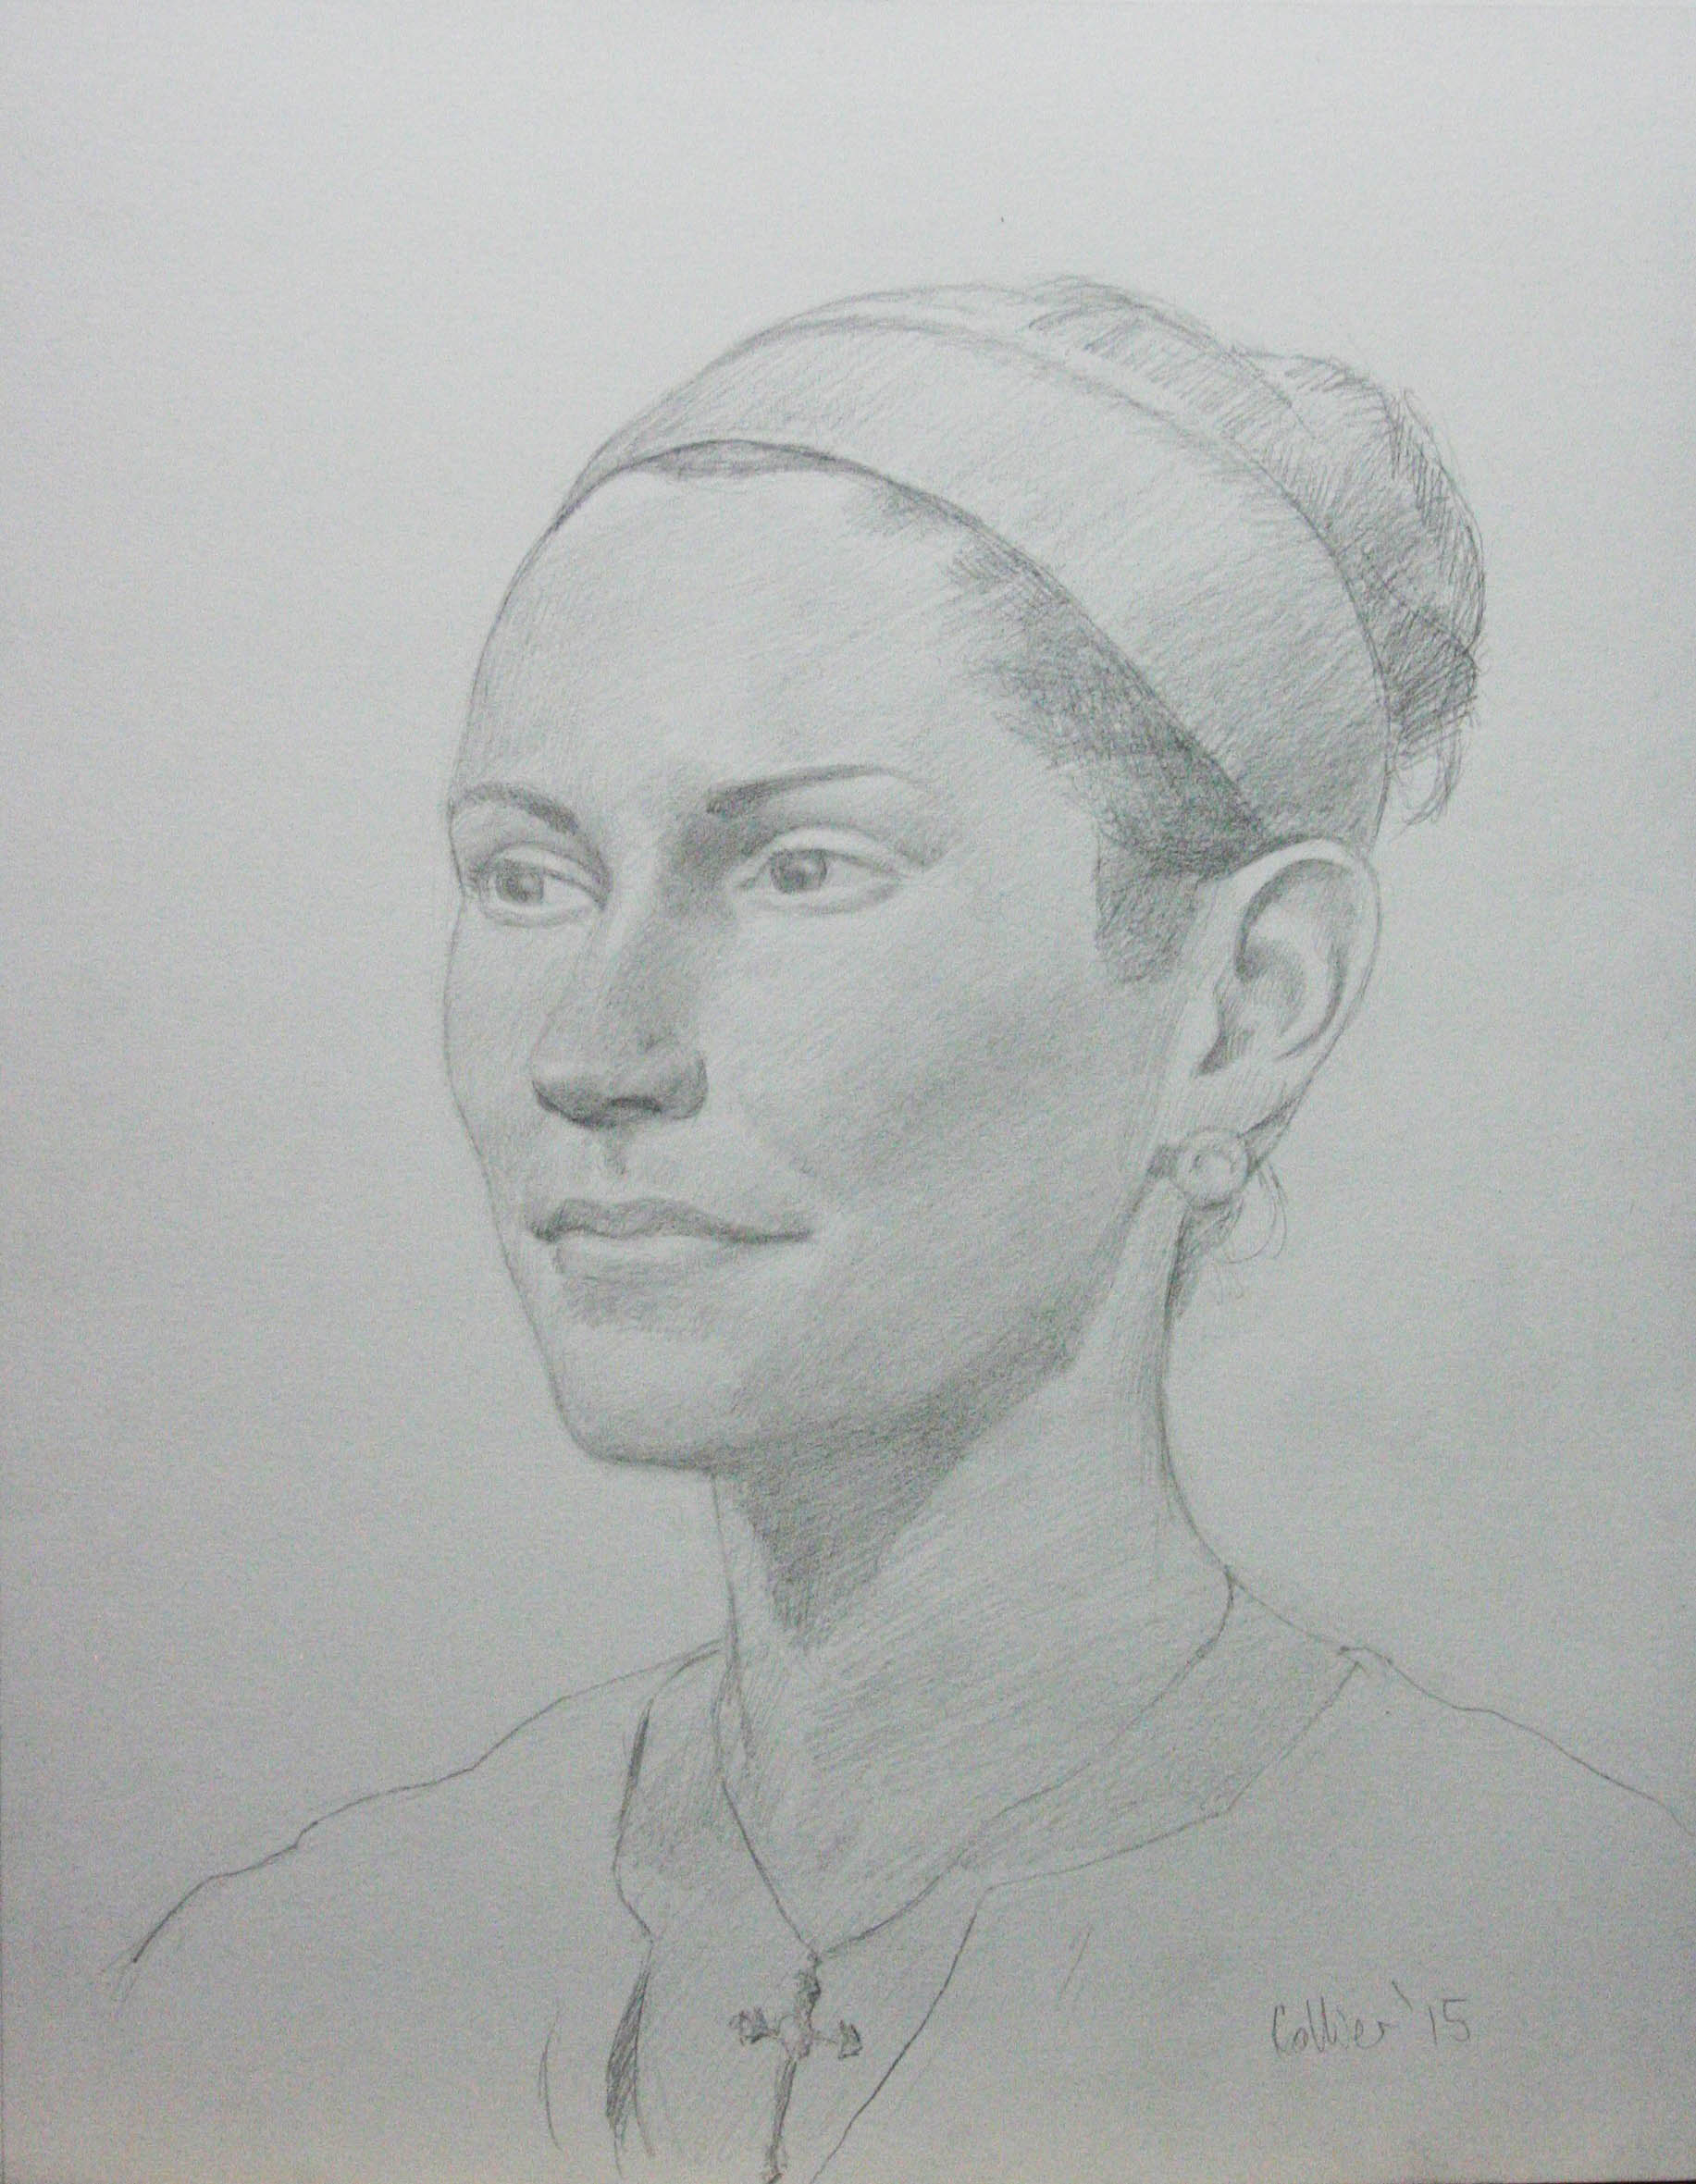 Howard Collier did this 3-hour drawing.